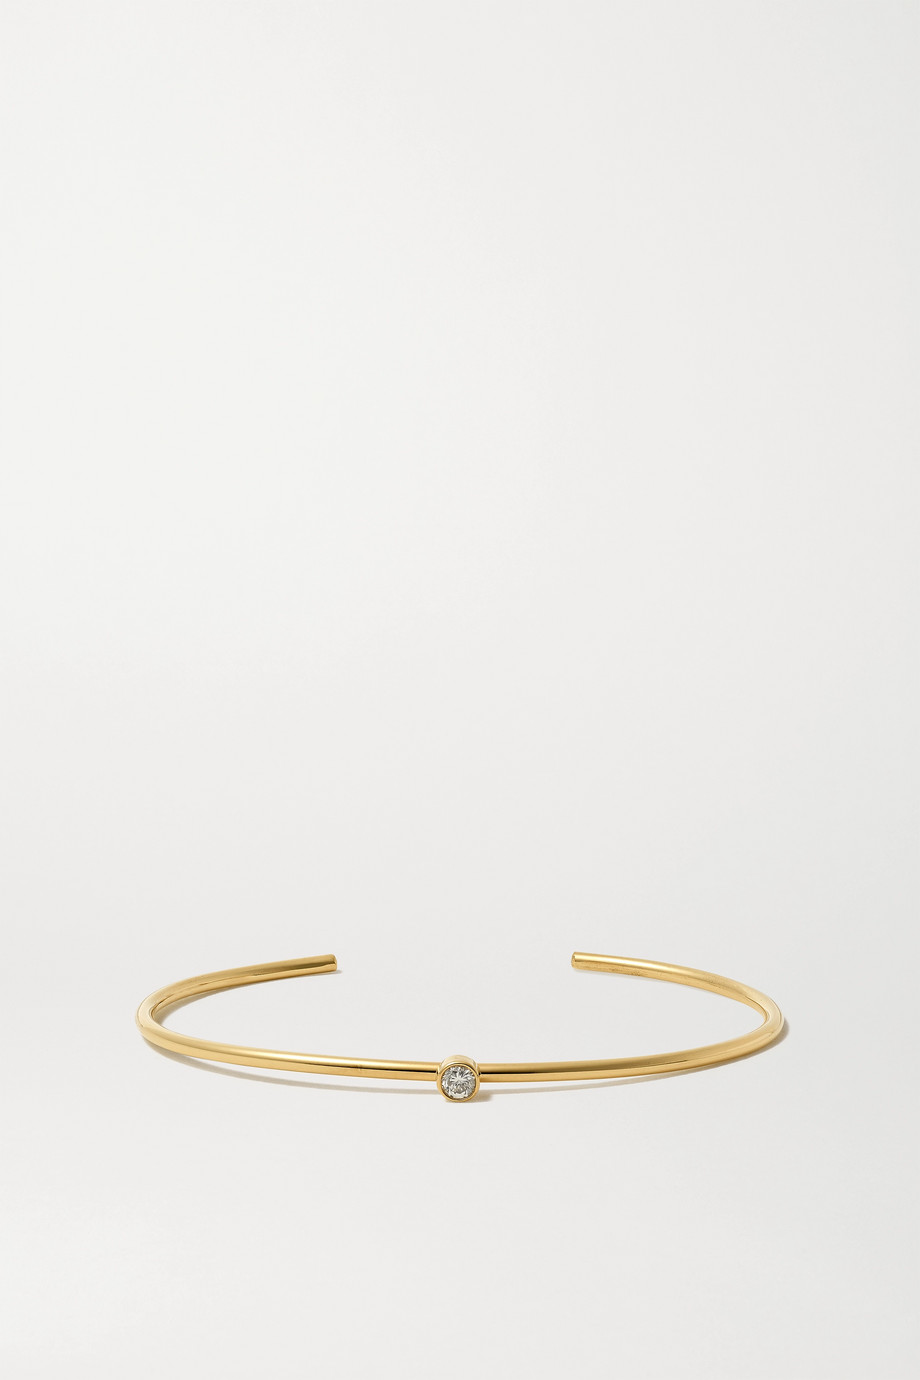 Jennifer Meyer 18-karat gold diamond cuff